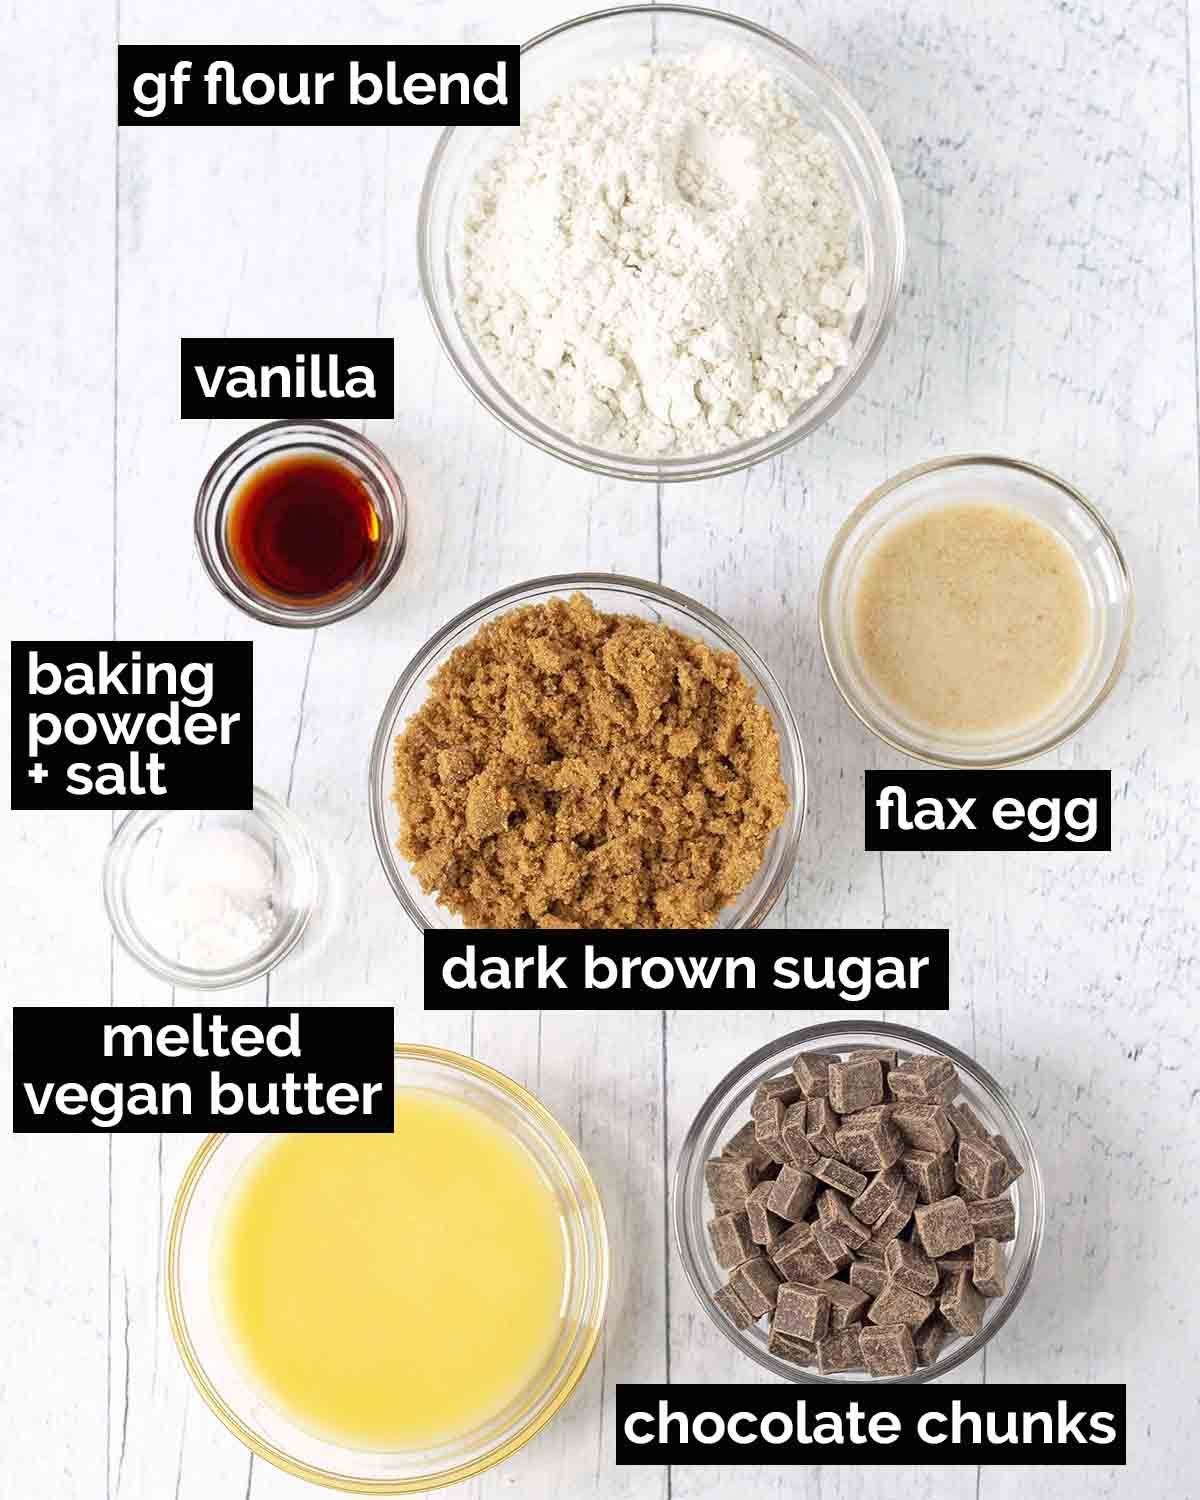 An overhead shot showing all the ingredients needed to make dairy-free, egg-free blondies.